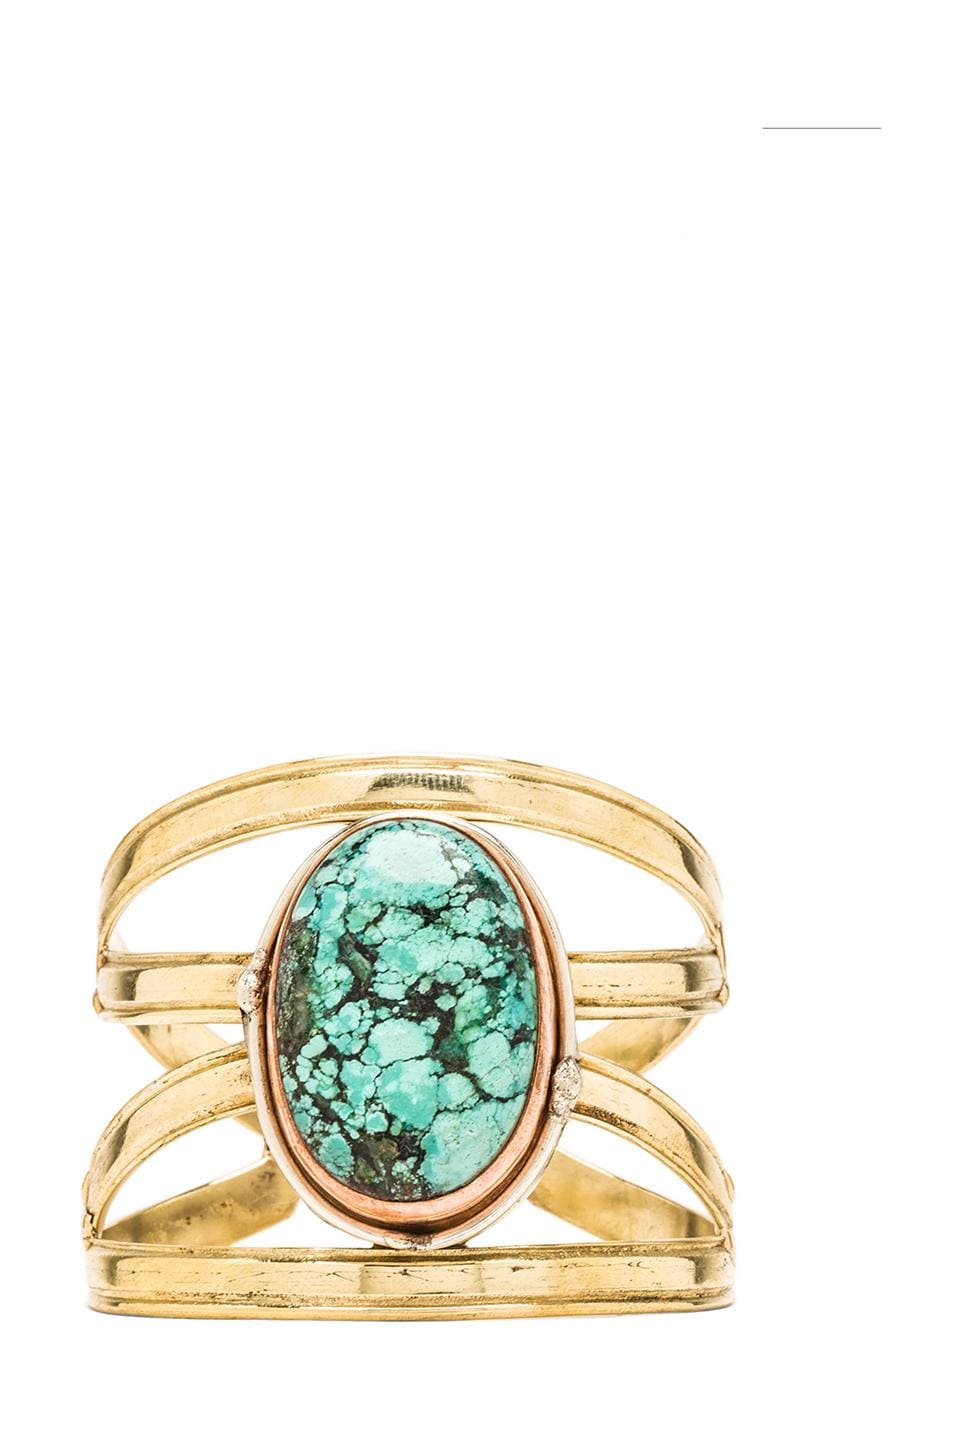 Natalie B Jewelry X Cuff in Turquoise